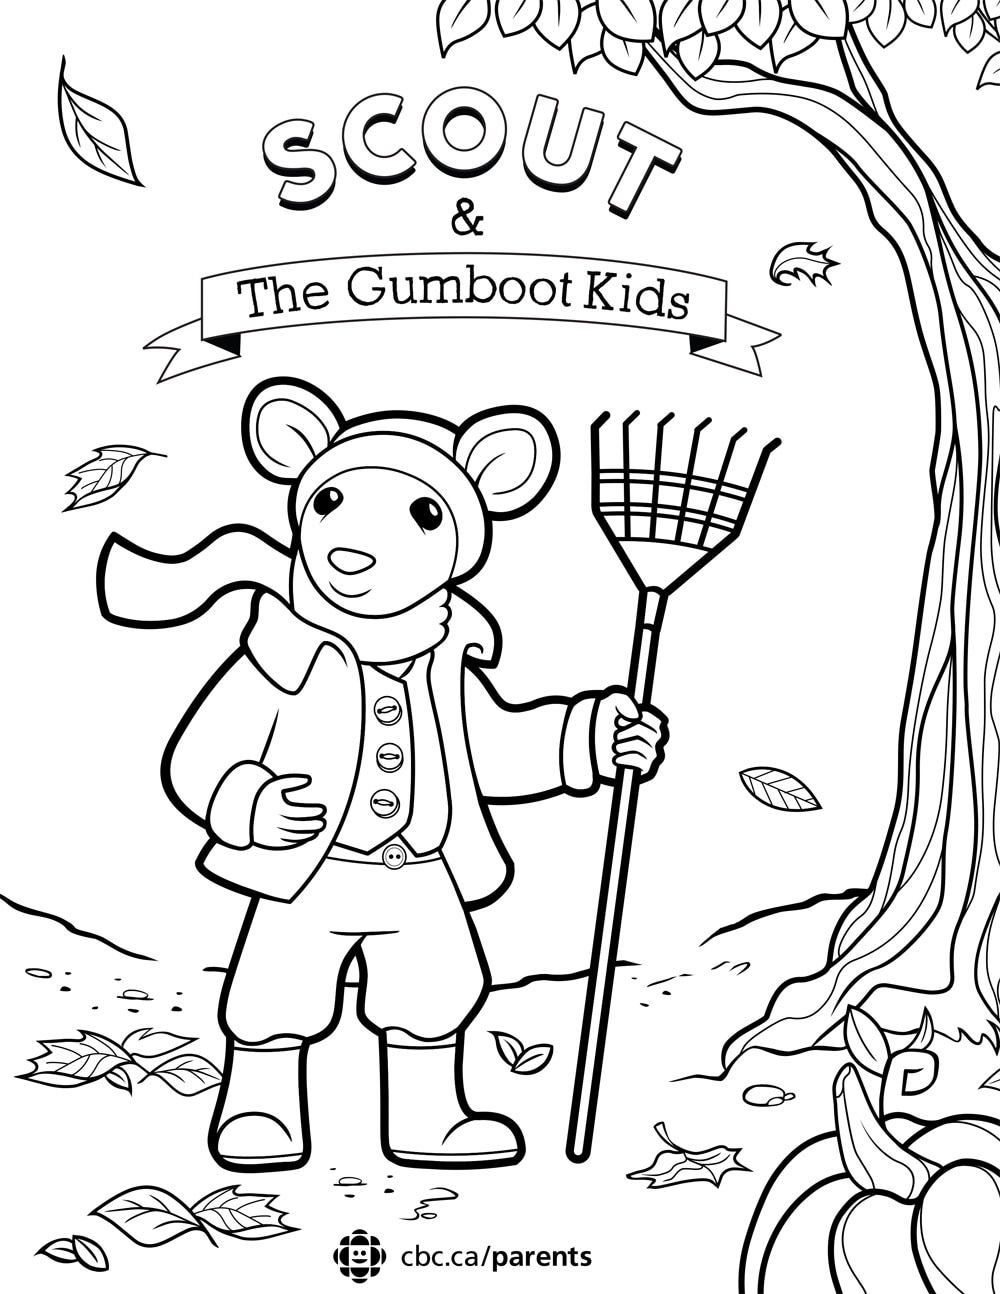 Colouring Together Why Colouring Is Great For Kids And Adults Cbc Parents In 2020 Coloring Sheets For Kids Coloring For Kids Kids